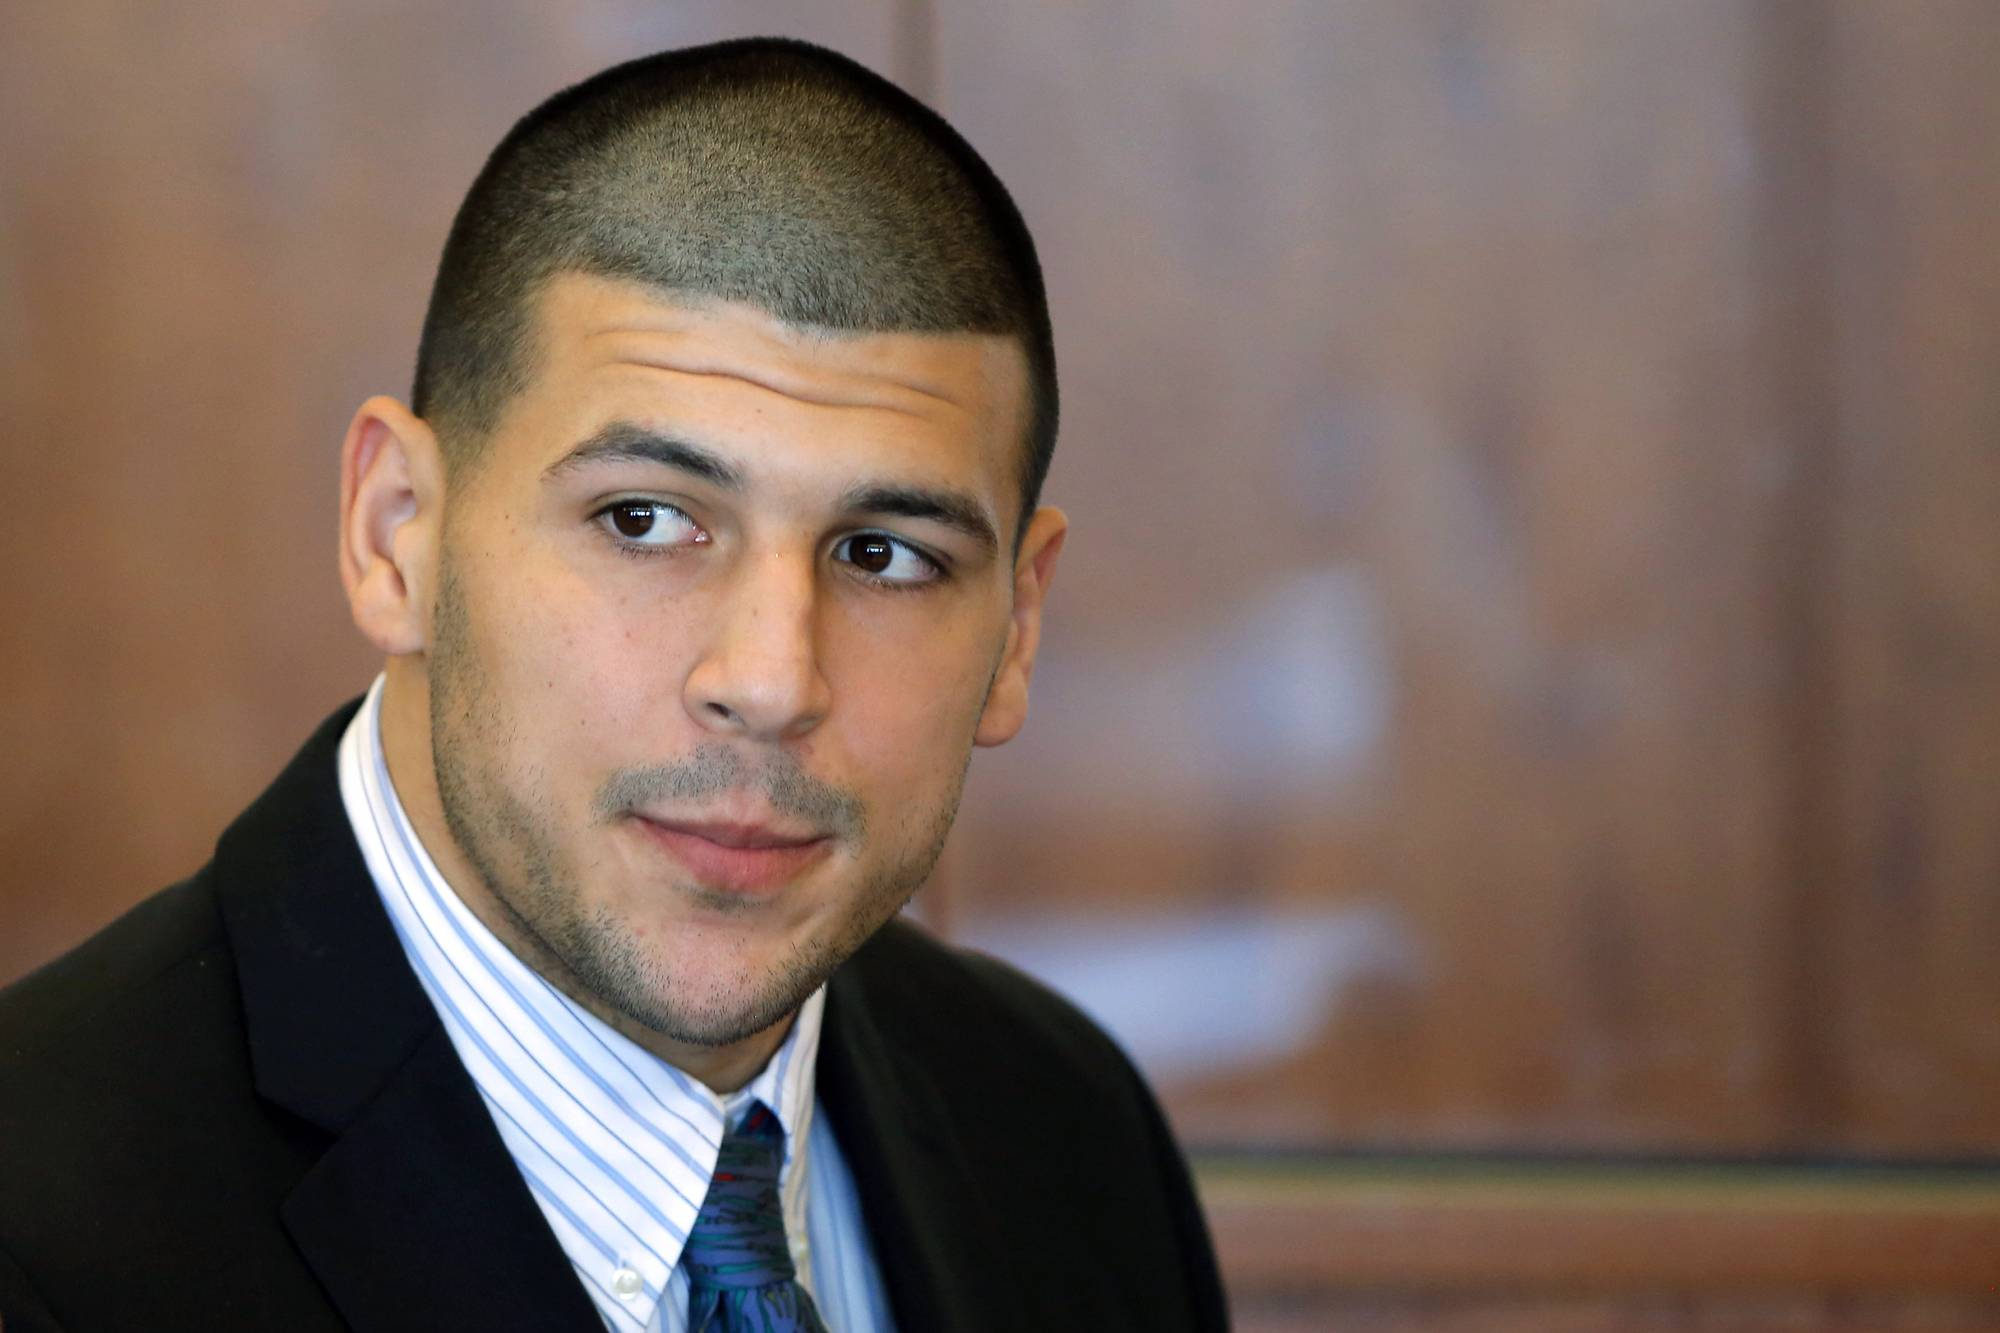 Former New England Patriots NFL football player Aaron Hernandez, who already faces a murder charge in a man's shooting death last year, was indicted Thursday, May 15, 2014, on new murder charges in an unrelated 2012 double slaying in Boston, police said.